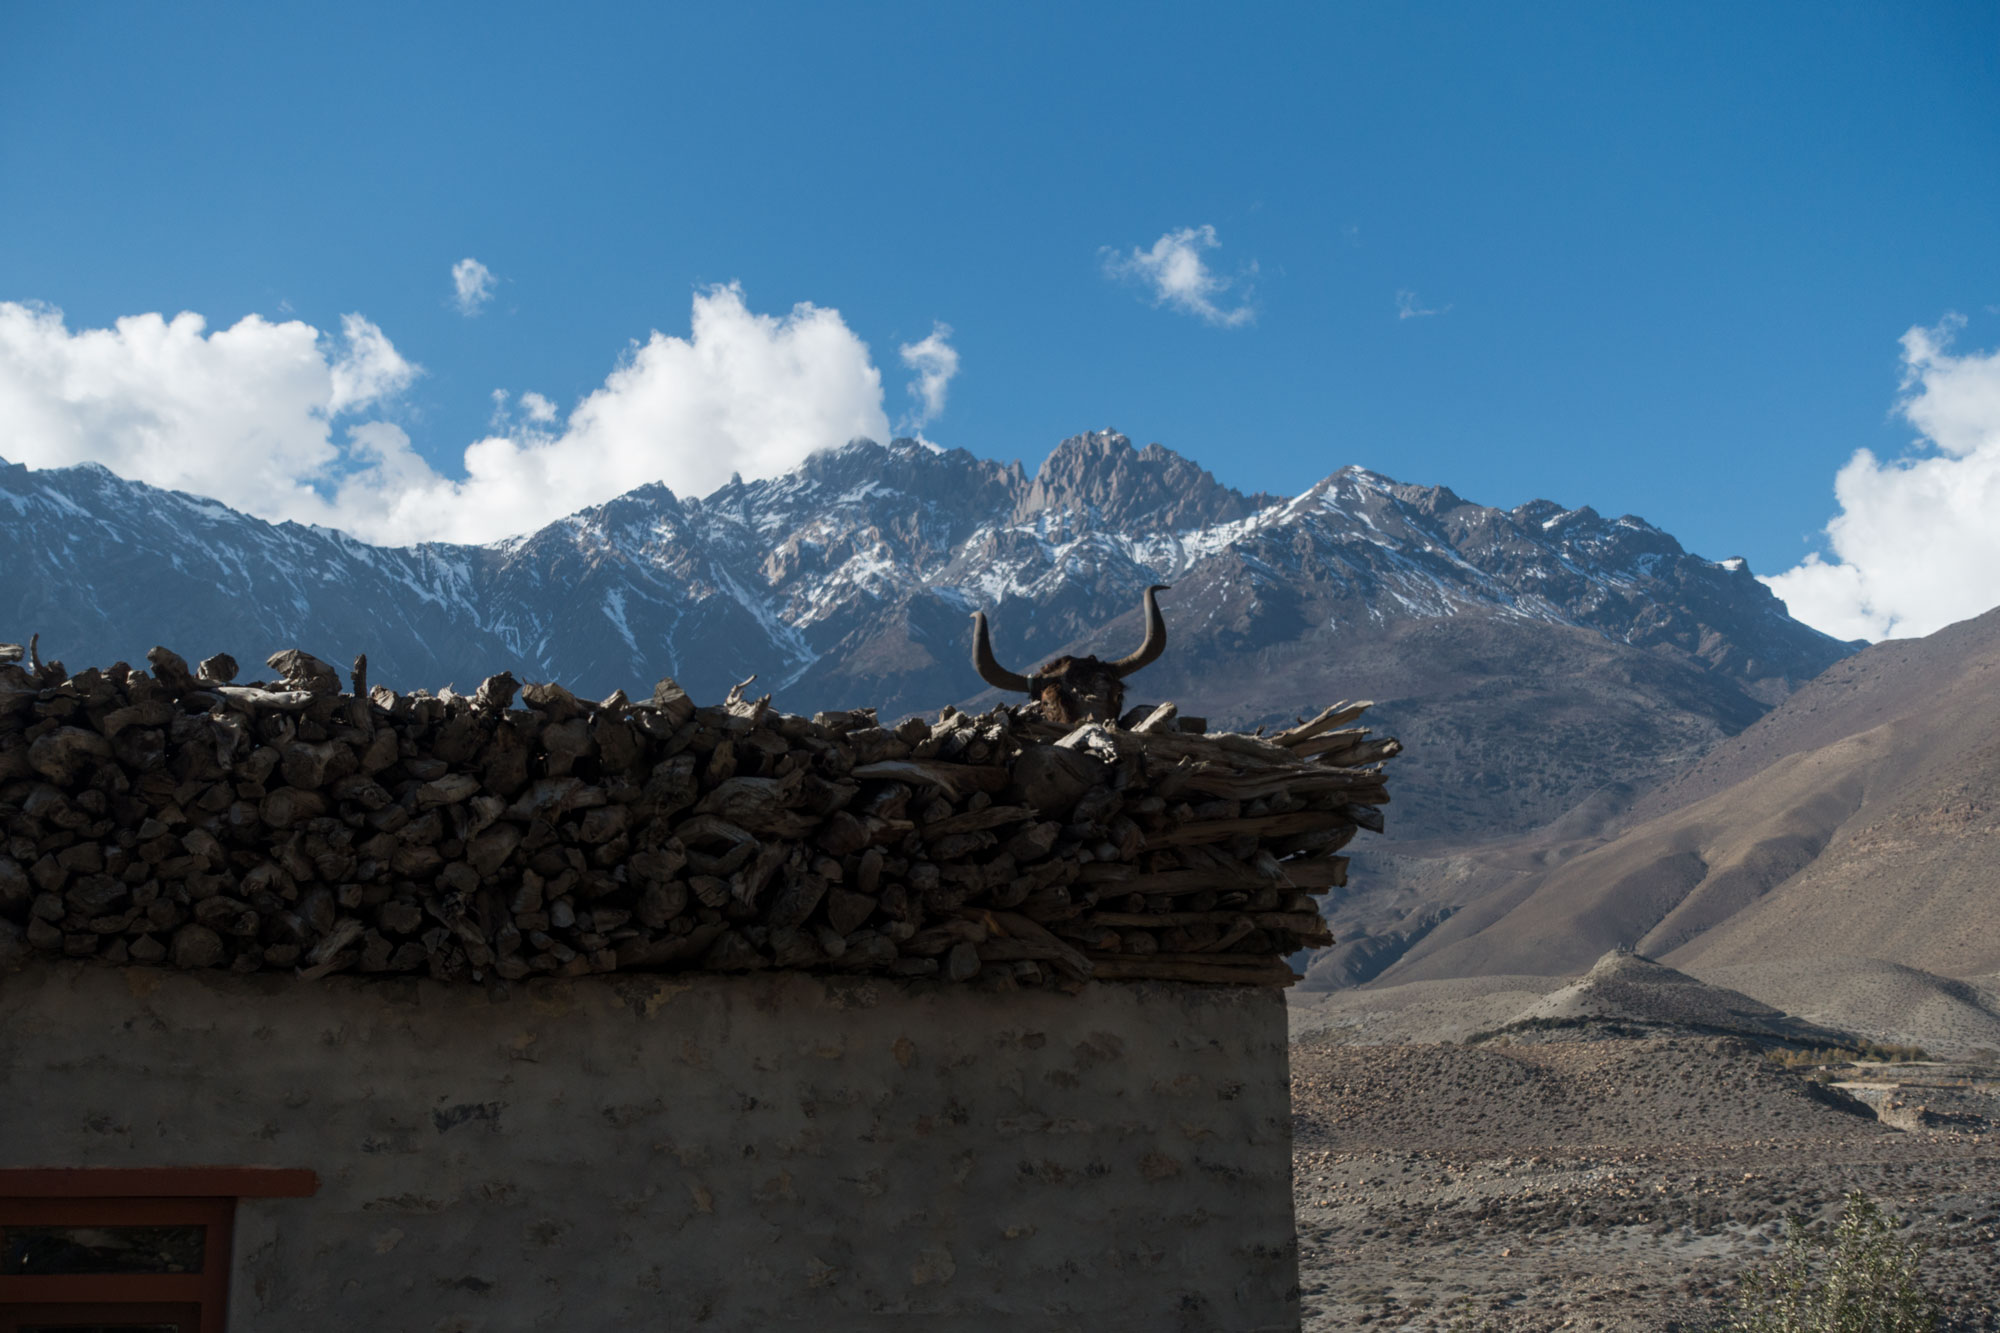 -A yak head placed on top of a house protects the occupants from invaders and evil spirits.-